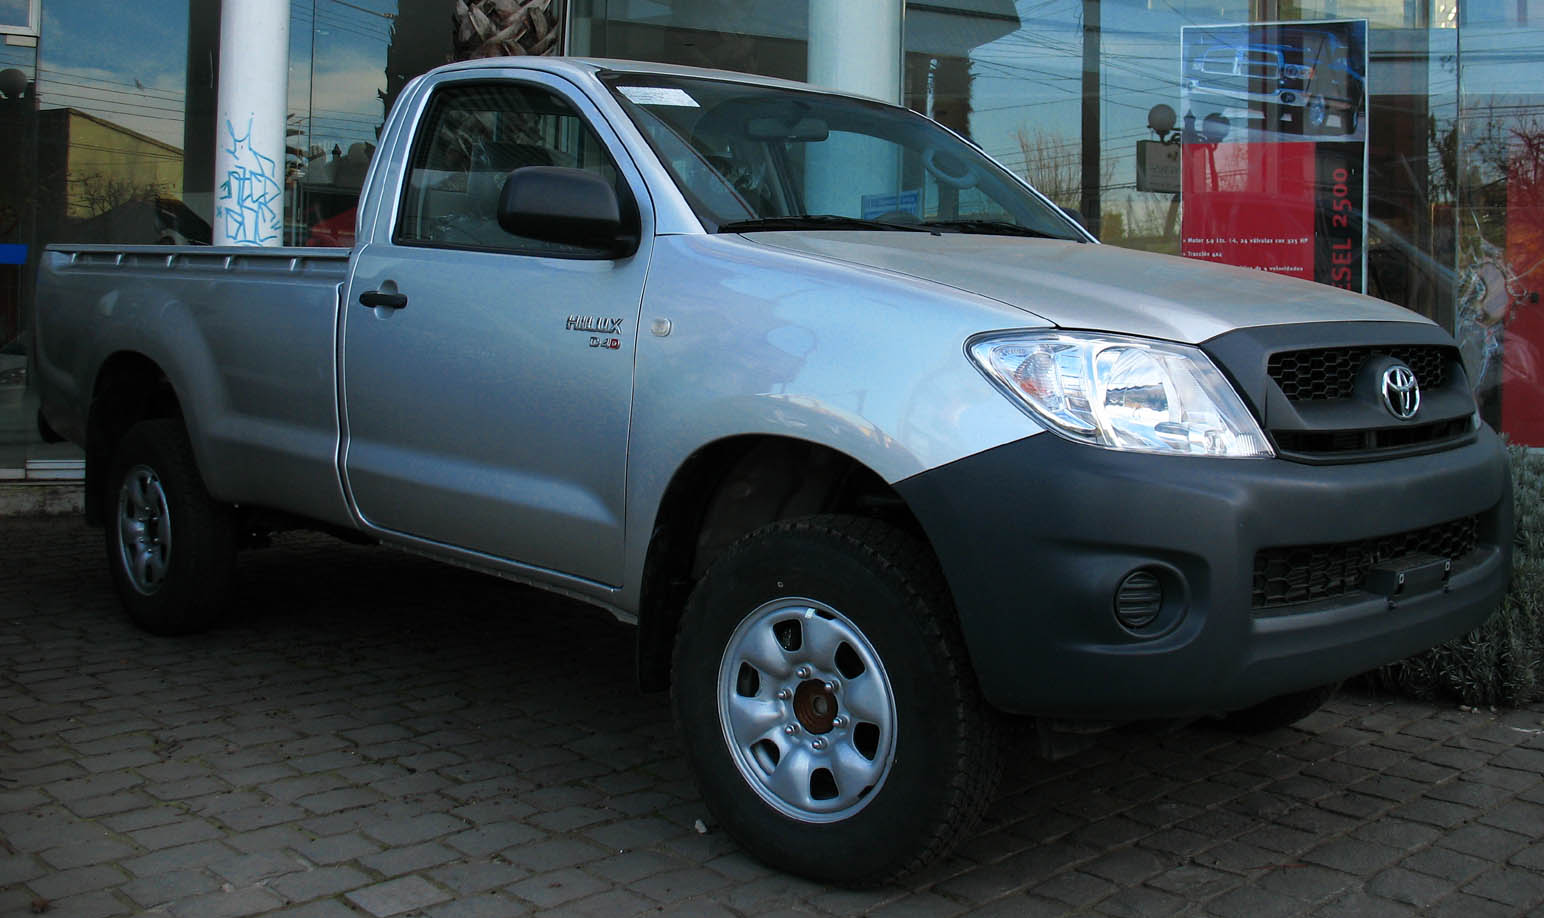 File:Toyota Hilux 2009 2 5 D-4D jpg - Wikimedia Commons